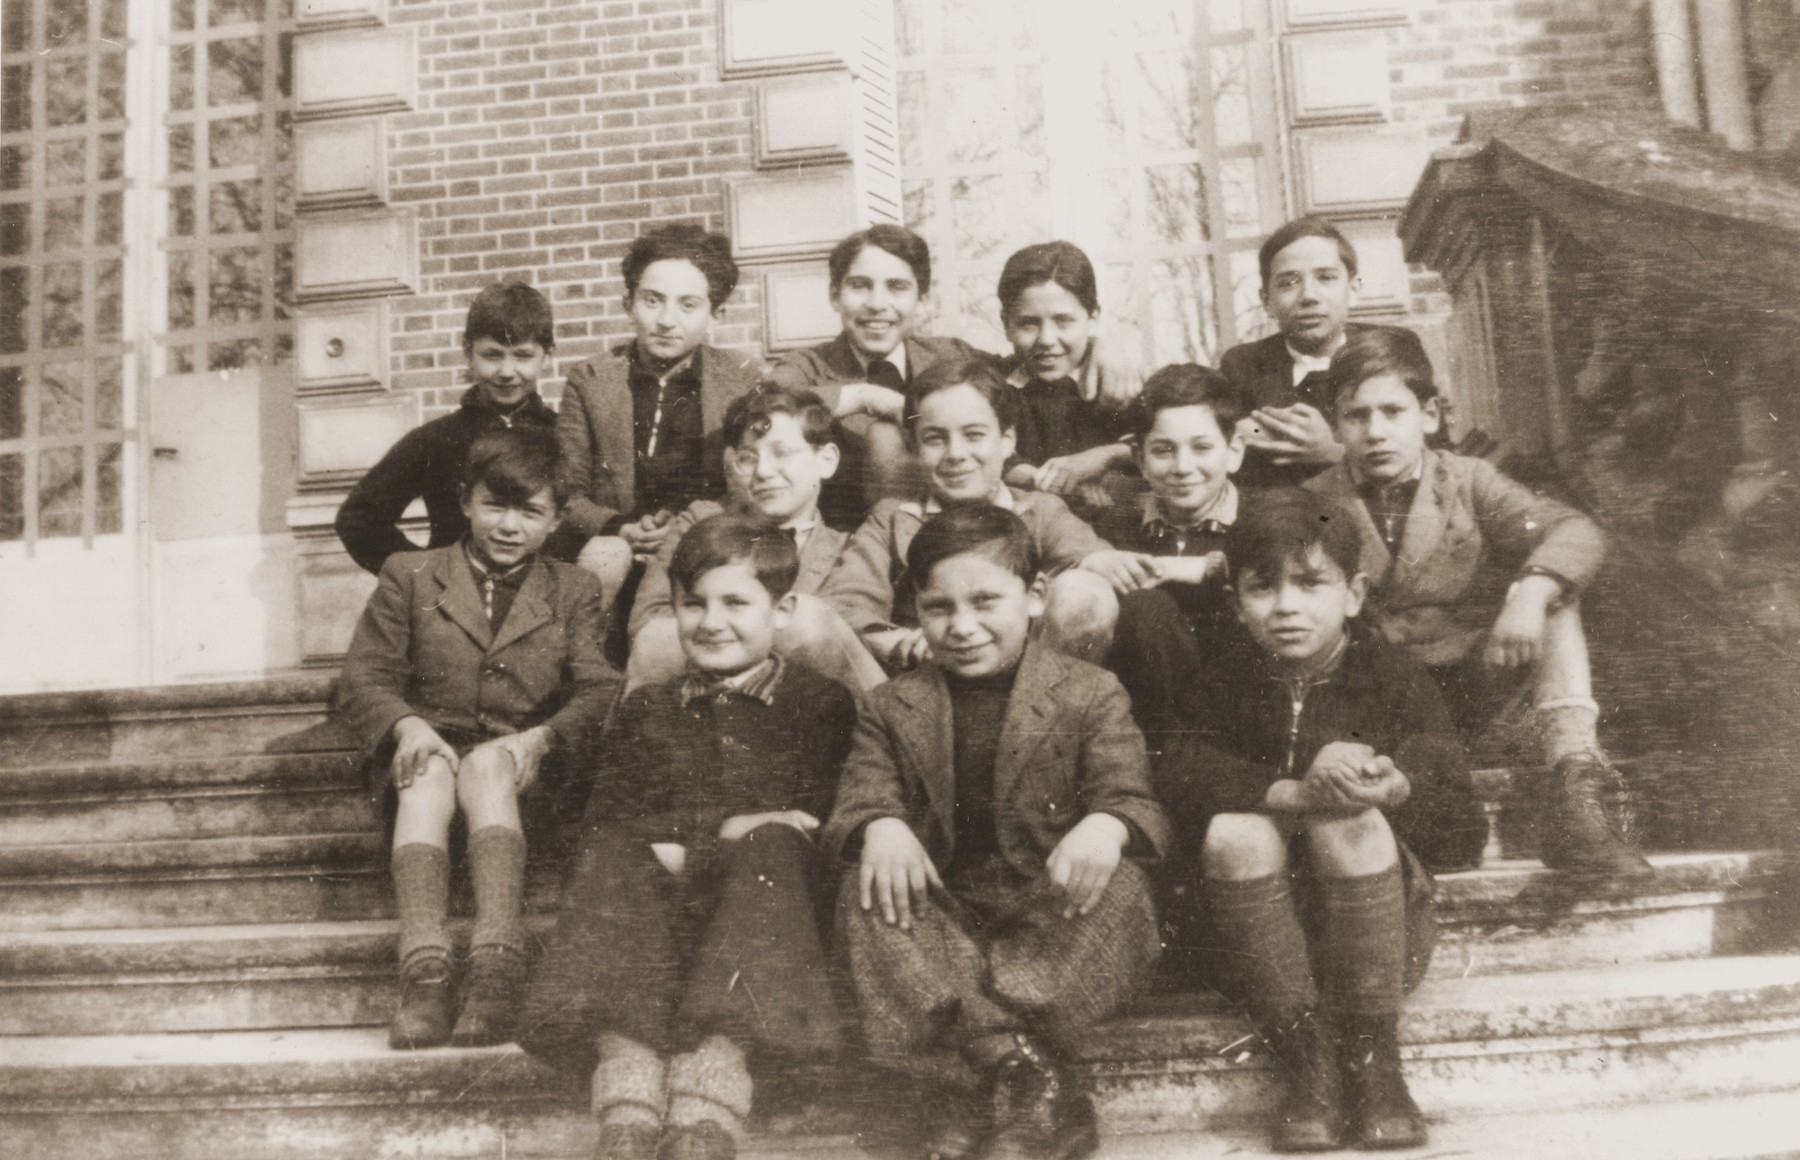 Group portrait of German-Jewish refugee children who were sent to France on a Kindertransport in the spring of 1939 on the steps of the Quincy-sous-Senart children's home near Paris.    Among those pictured are Arno Marcuse (front row, left), Norbert Bikales (second row, left),  Wolfgang Blumenreich (second row, third from left), Gerhard Alexander (second row, second from right), Gerhard Glass (second row, far right), Eric Goldfarb (back row, second from left), Walter Herzig (back row, center), Heinz Stephan Lewy (top row, second from the right) and Gerhard Rosenzweig (top row, far right).